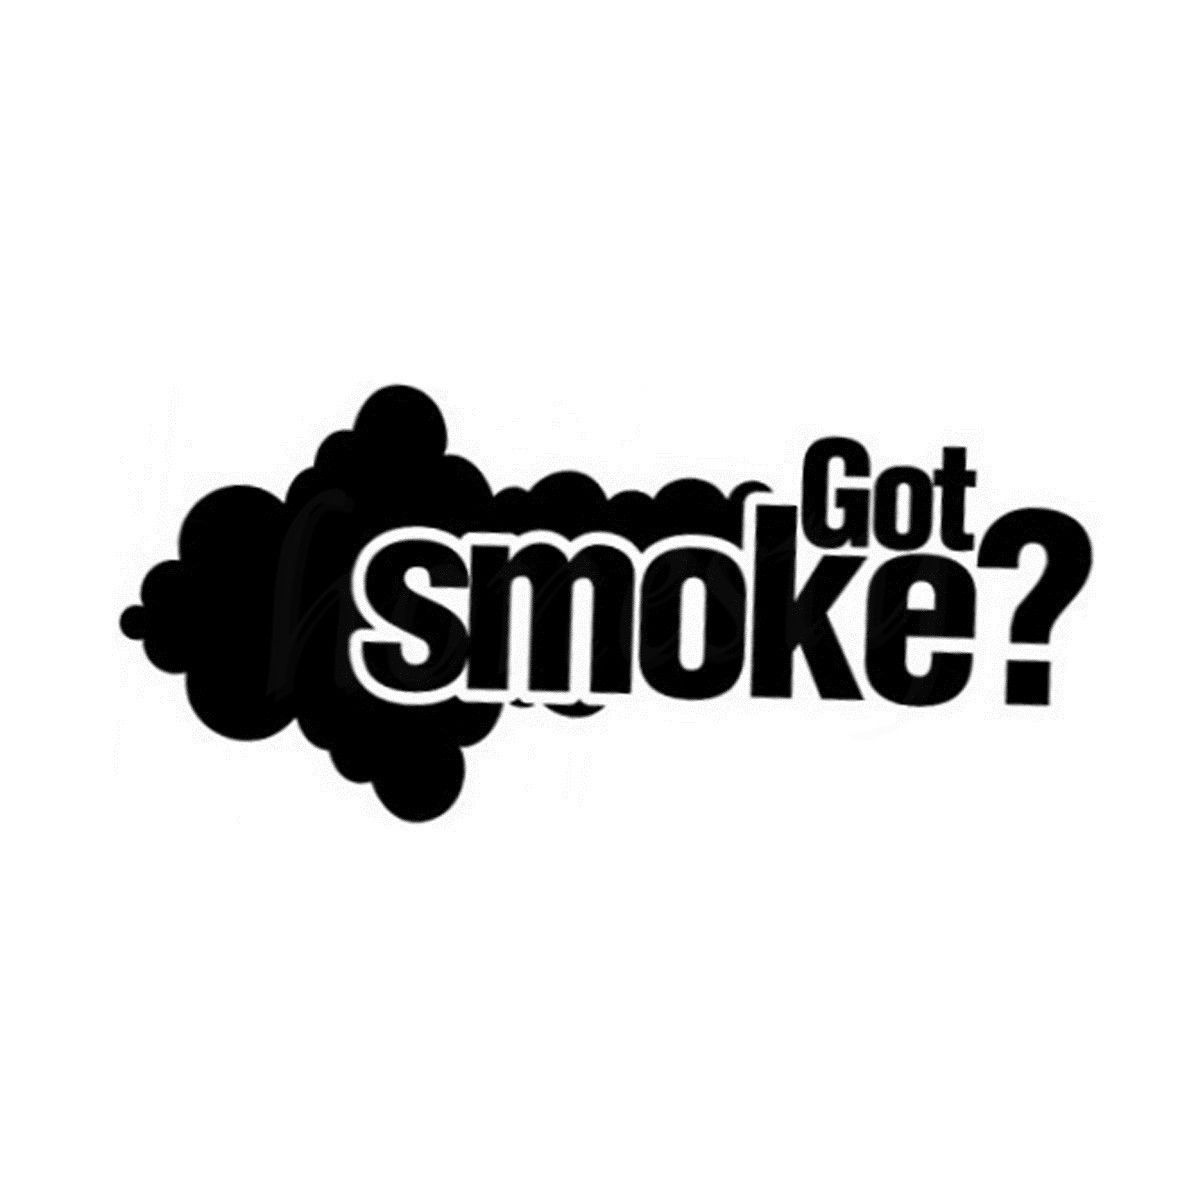 Got Smoke Wall Home Door Window Glass Car Sticker Laptop